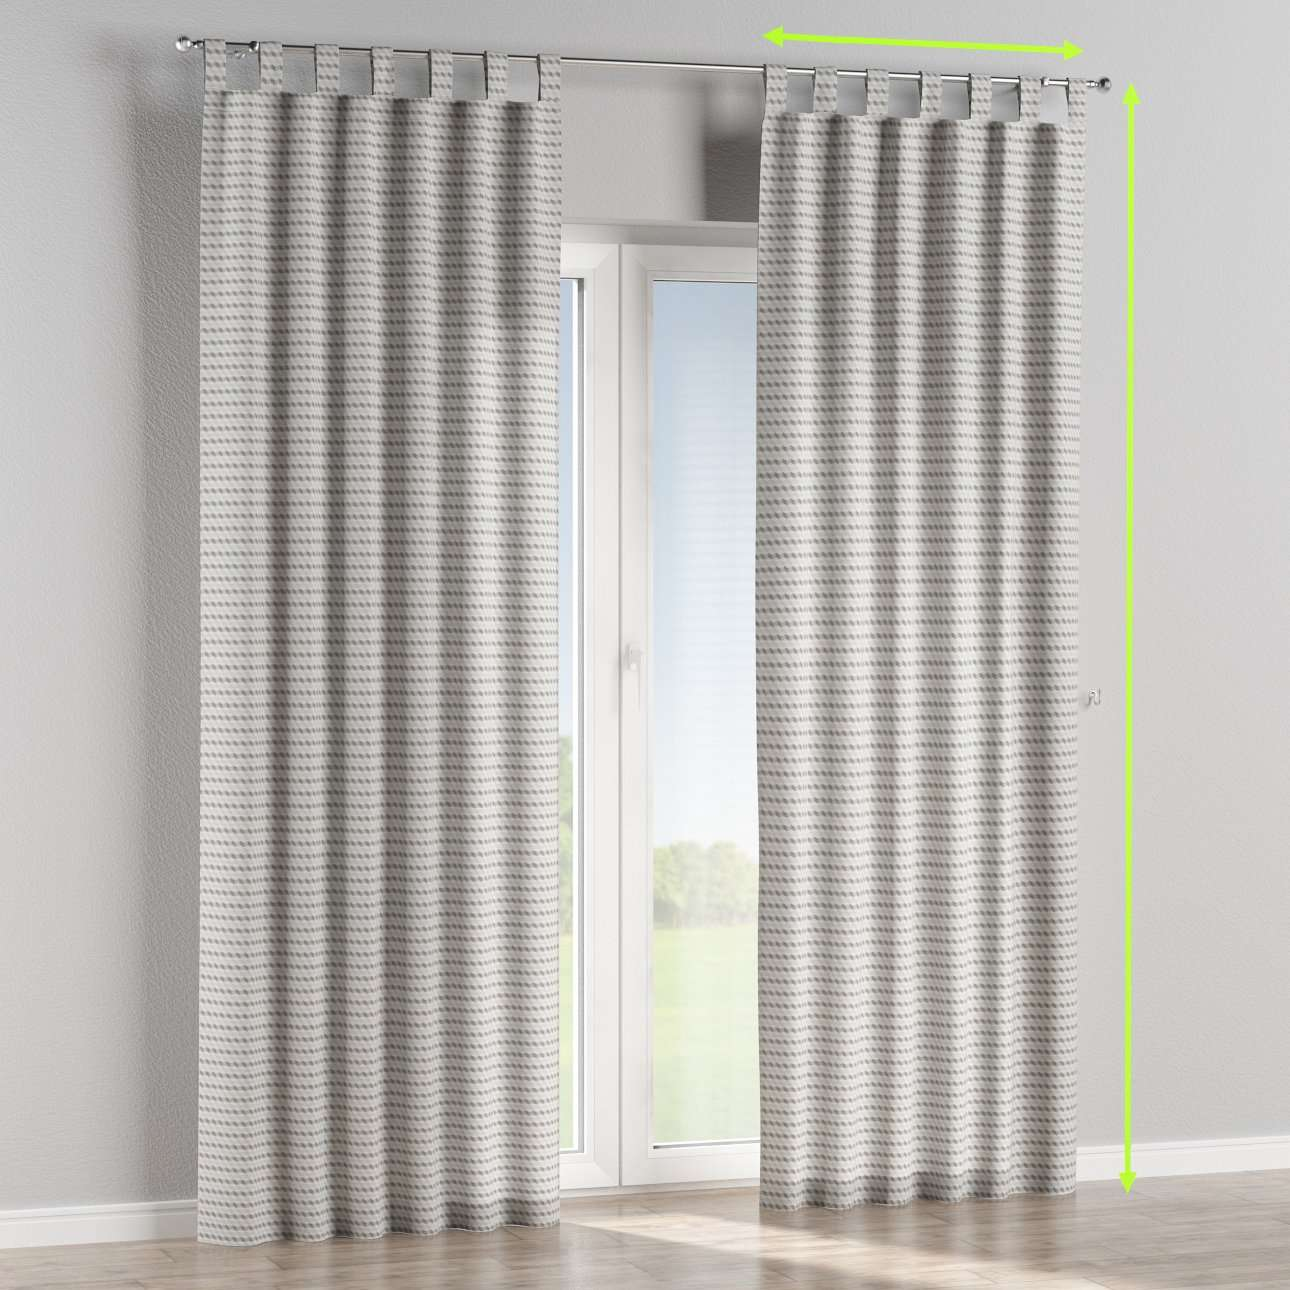 Tab top lined curtains in collection Rustica, fabric: 140-33